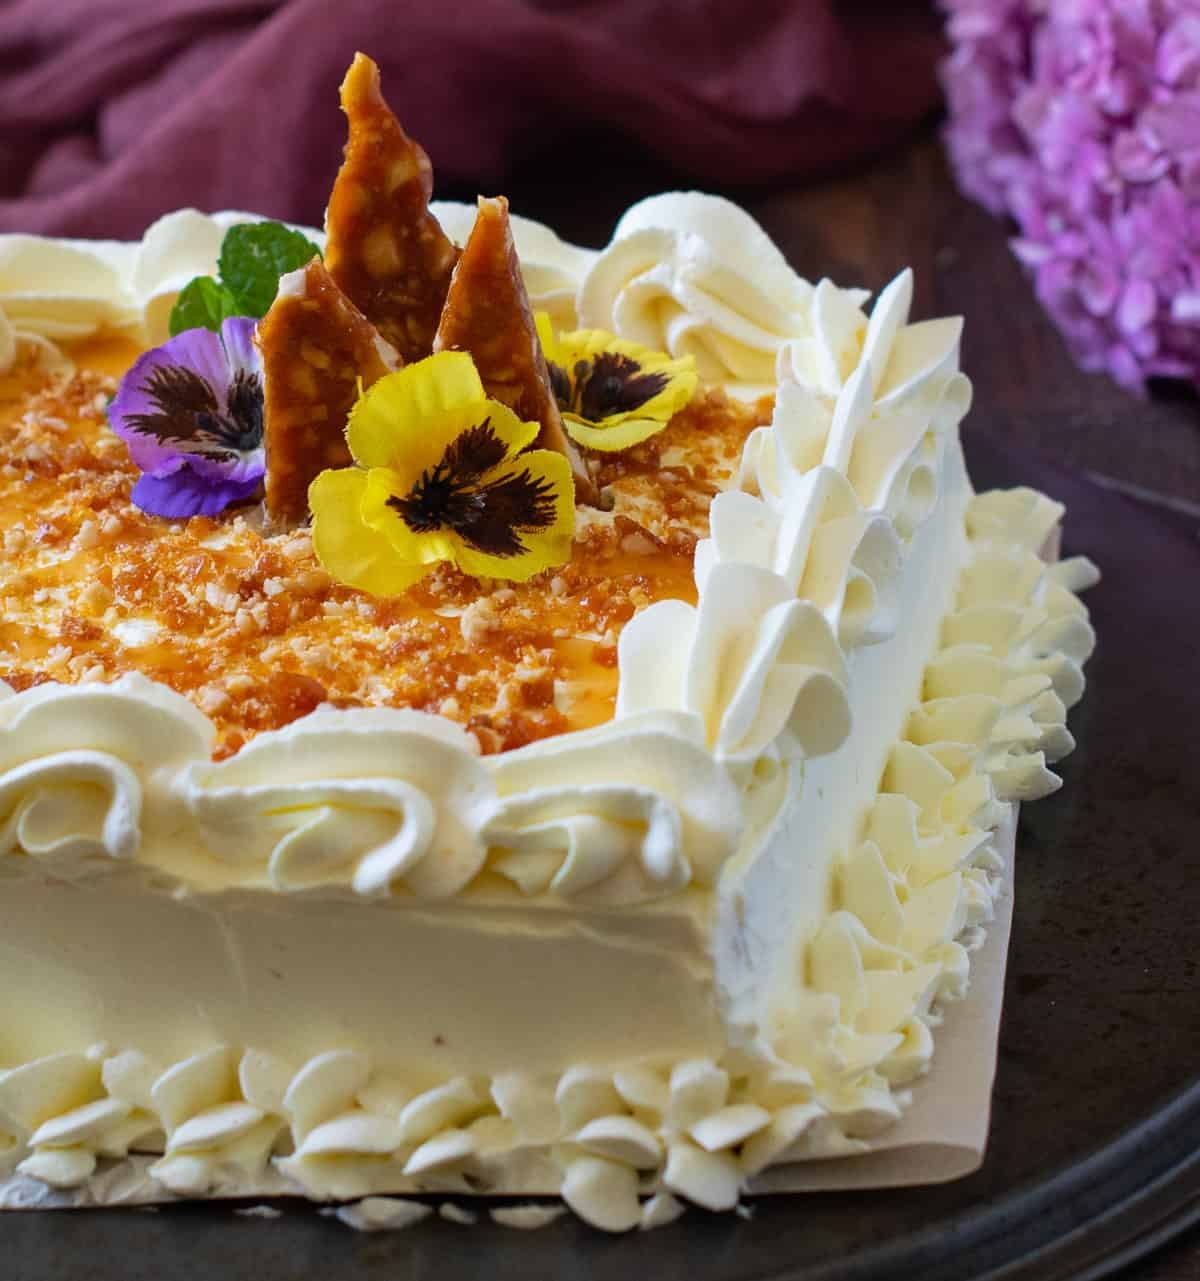 Whipped cream frosted butterscotch cake with decorations